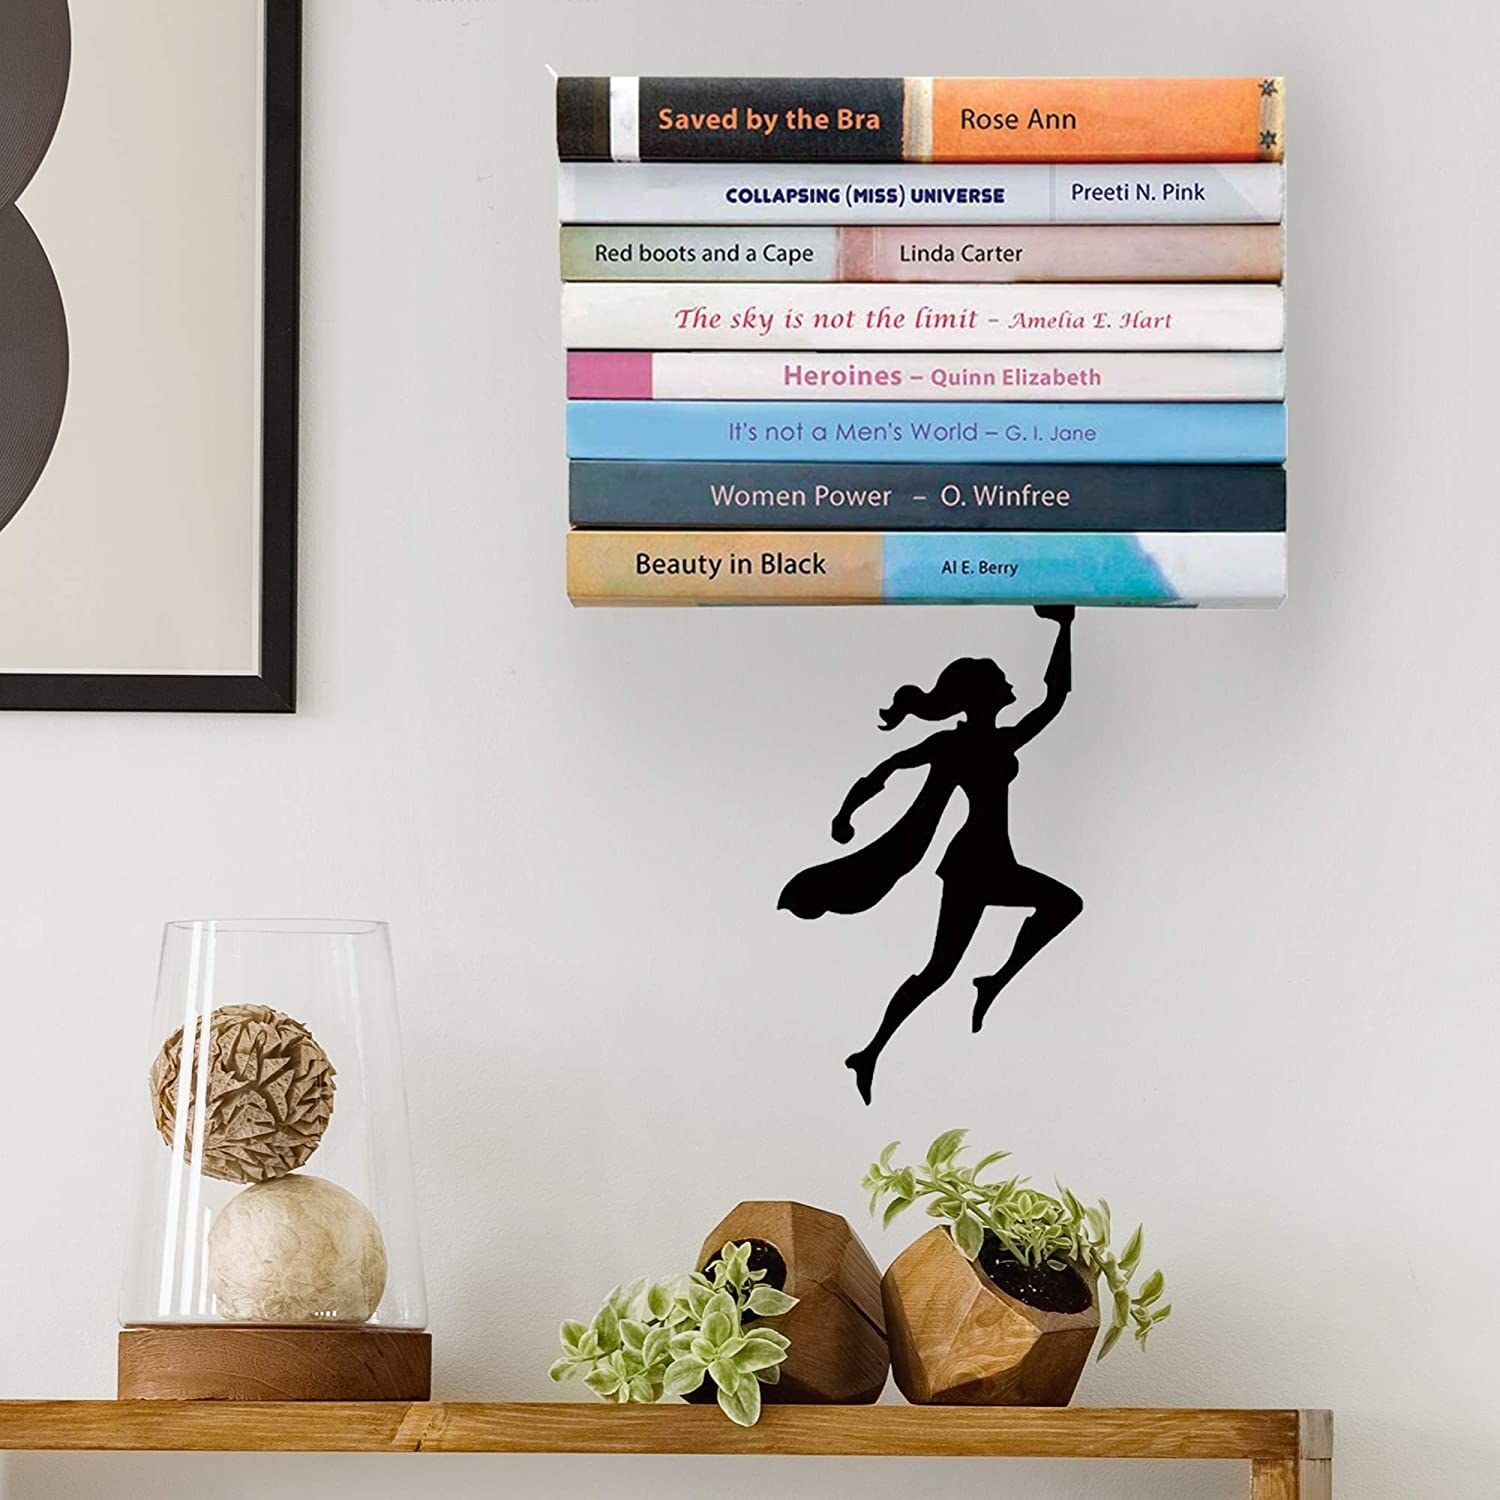 A superhero holding up a pile of books above a desk with decor and plants on it